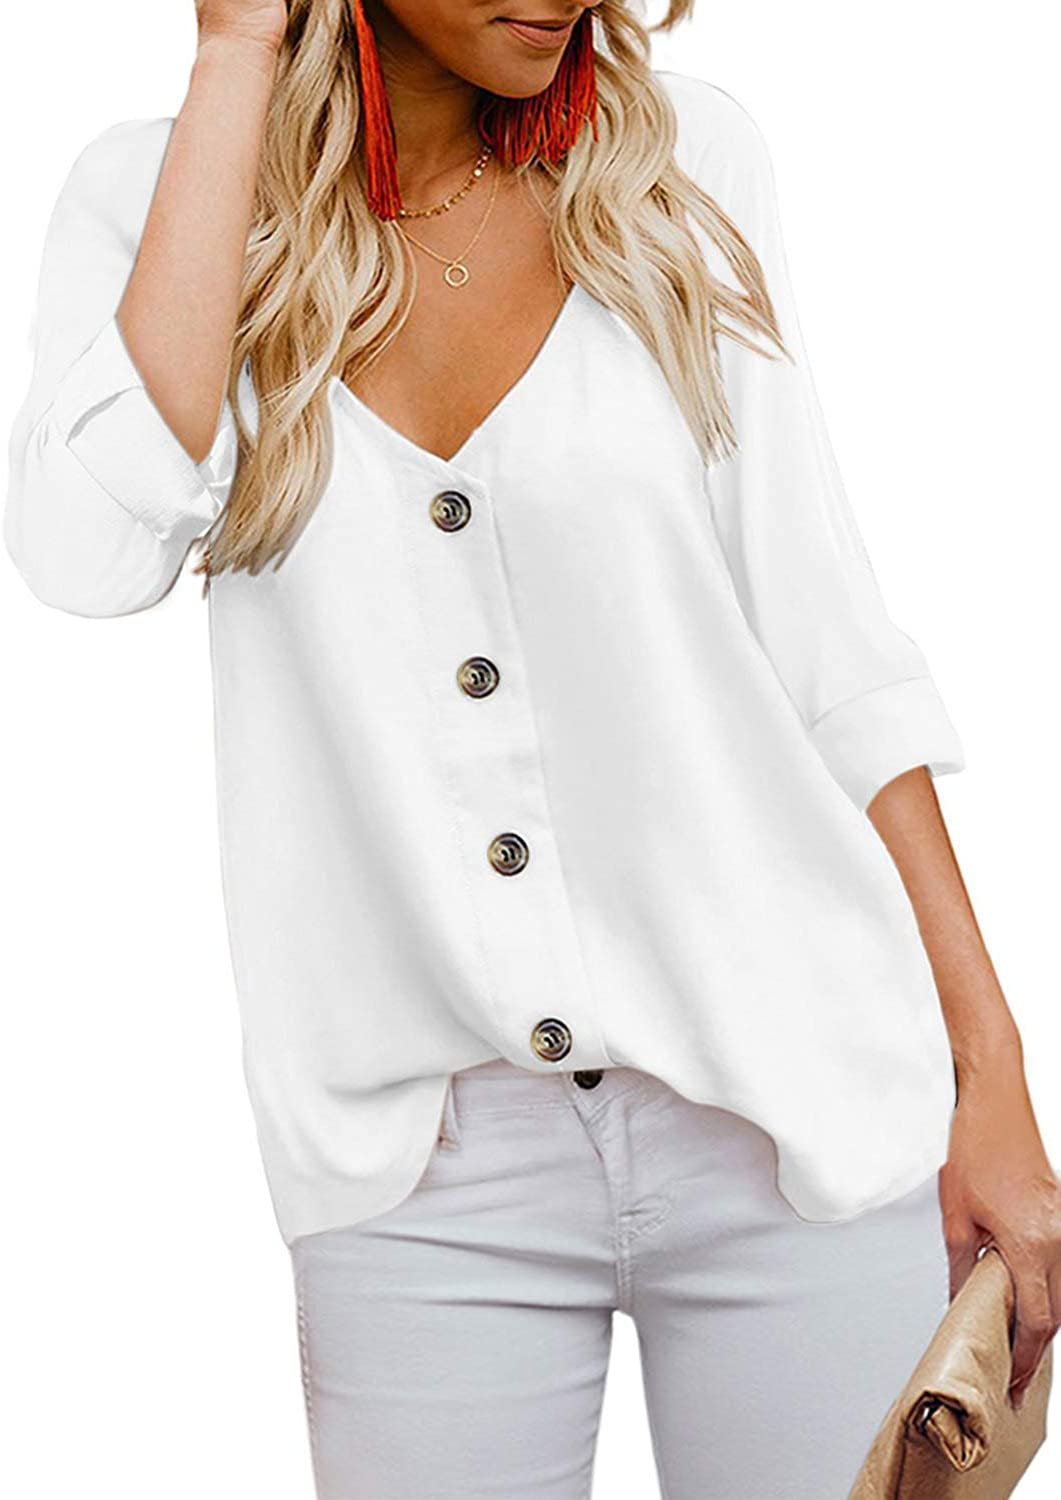 Arainlo Women's V-Neck Button Down Roll Up Sleeves Solid Casual Shirt